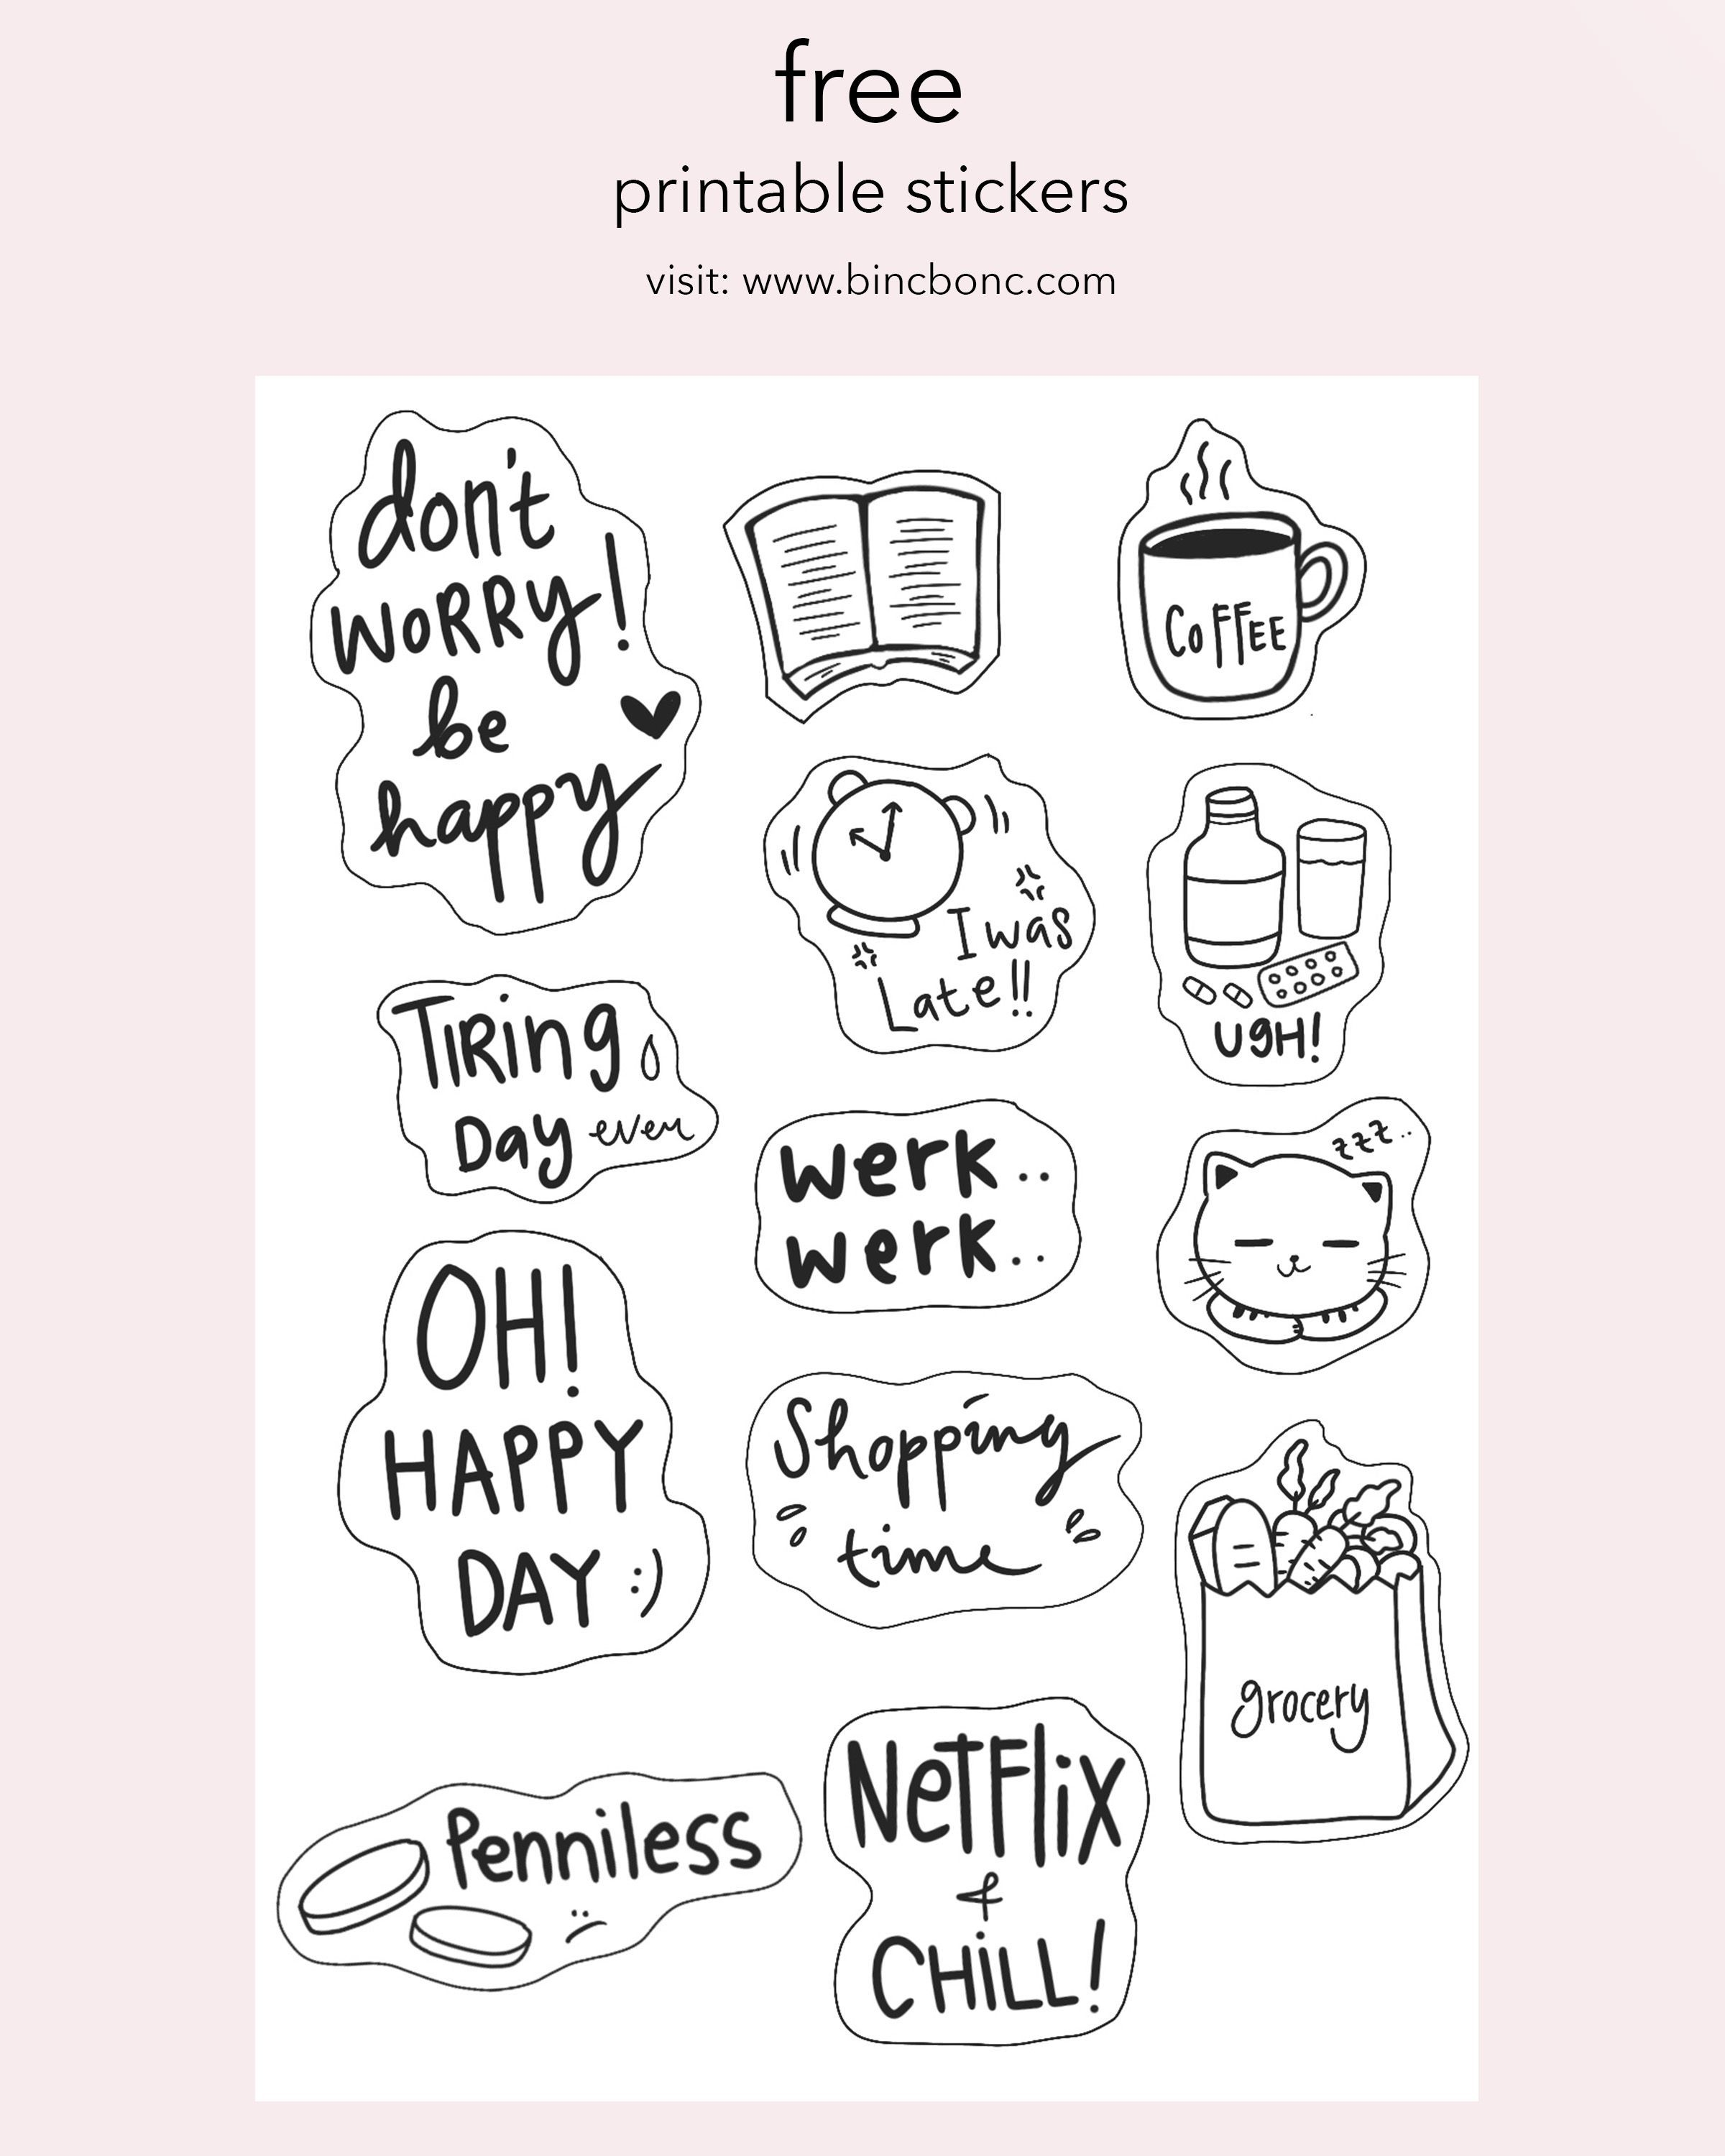 Good Pictures Printable Stickers Free Thoughts On The List Of Many Bene In 2021 Scrapbook Stickers Printable Free Printable Planner Stickers Black And White Stickers